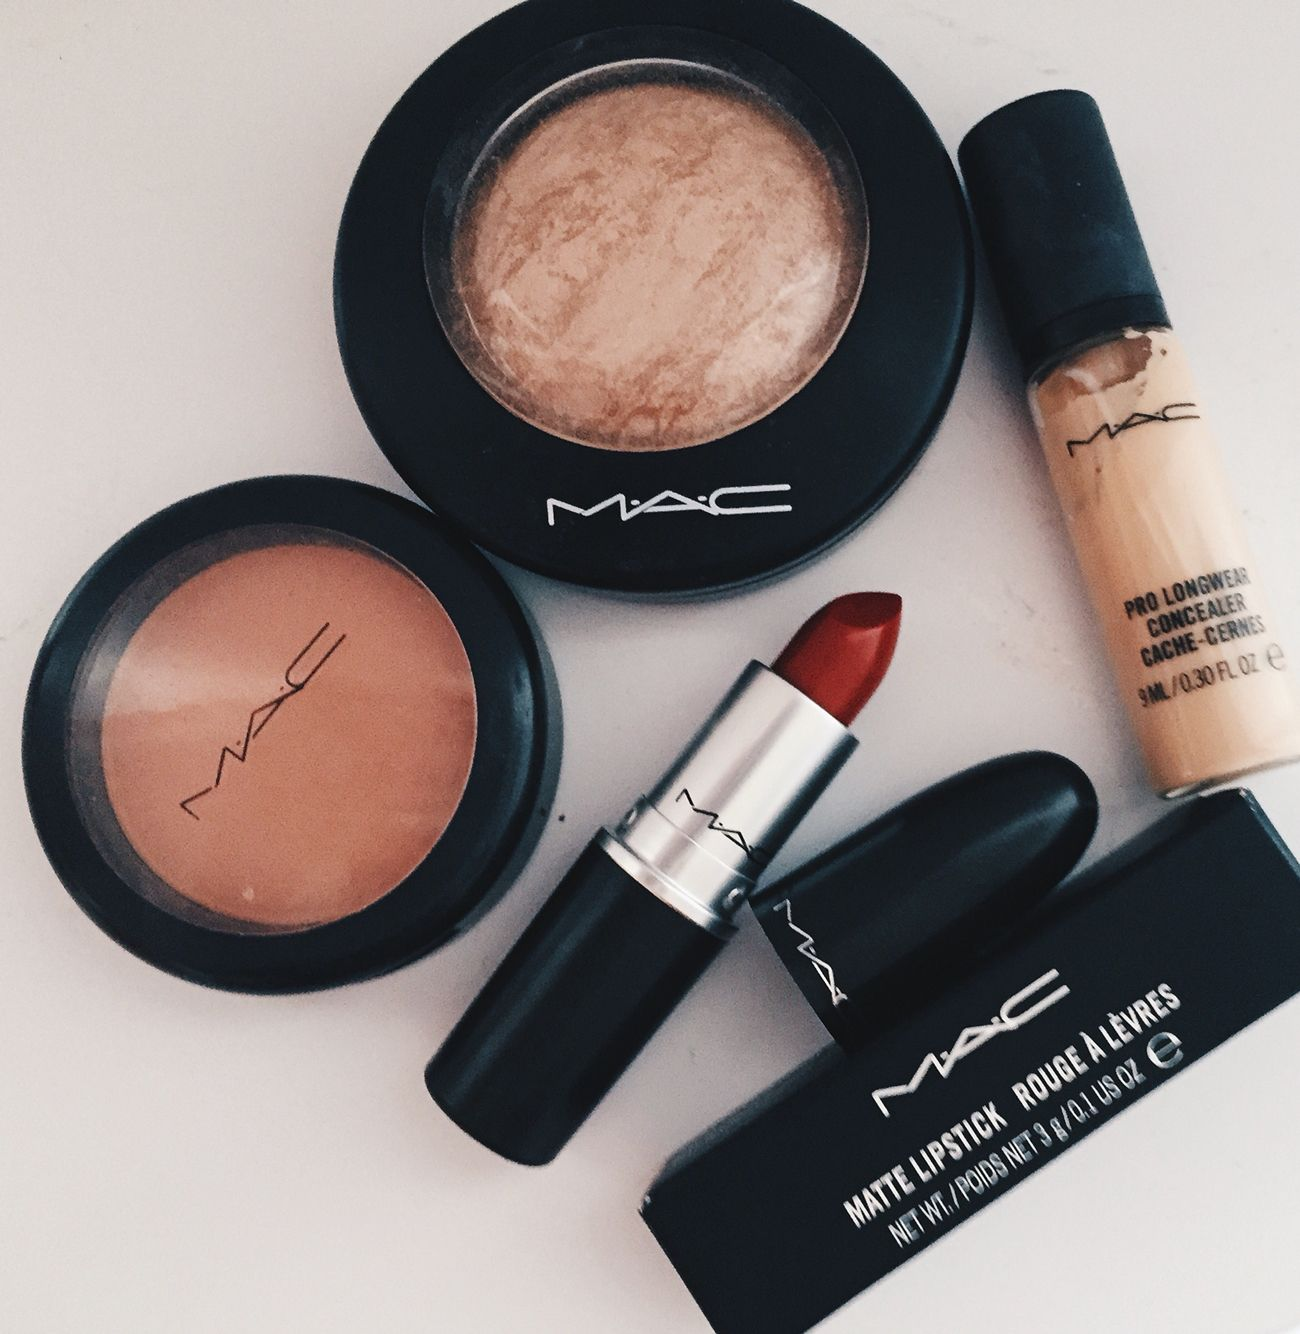 Discount mac makeup cosmetics wholesale outlet sale 1 9 for What is cosmetics made of